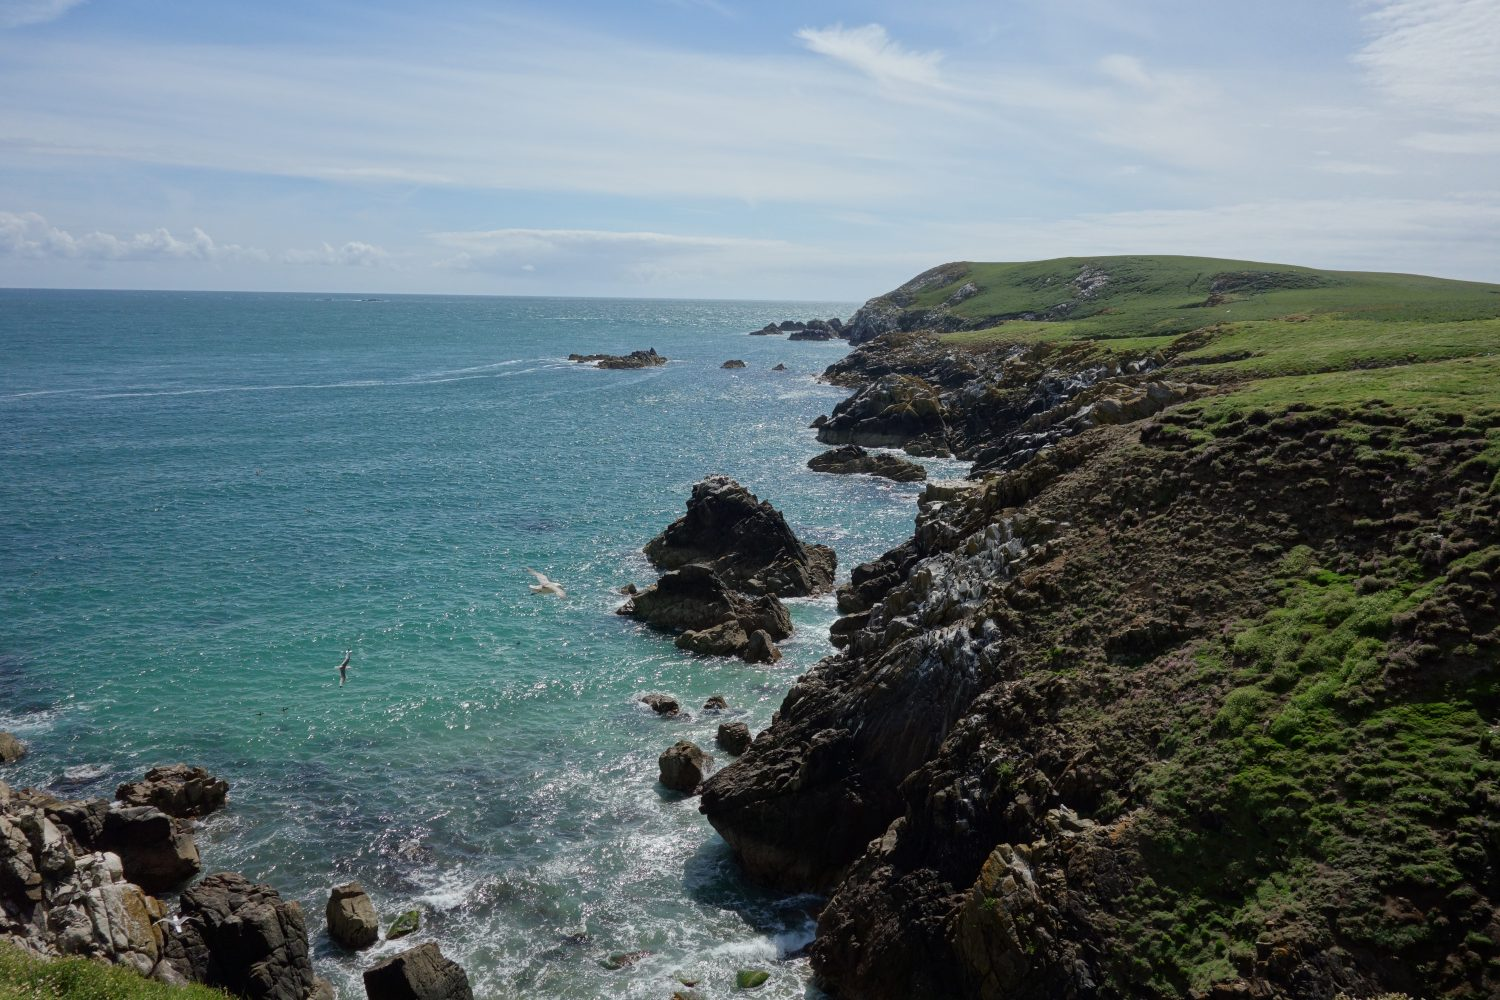 West view Saltee Island coastline